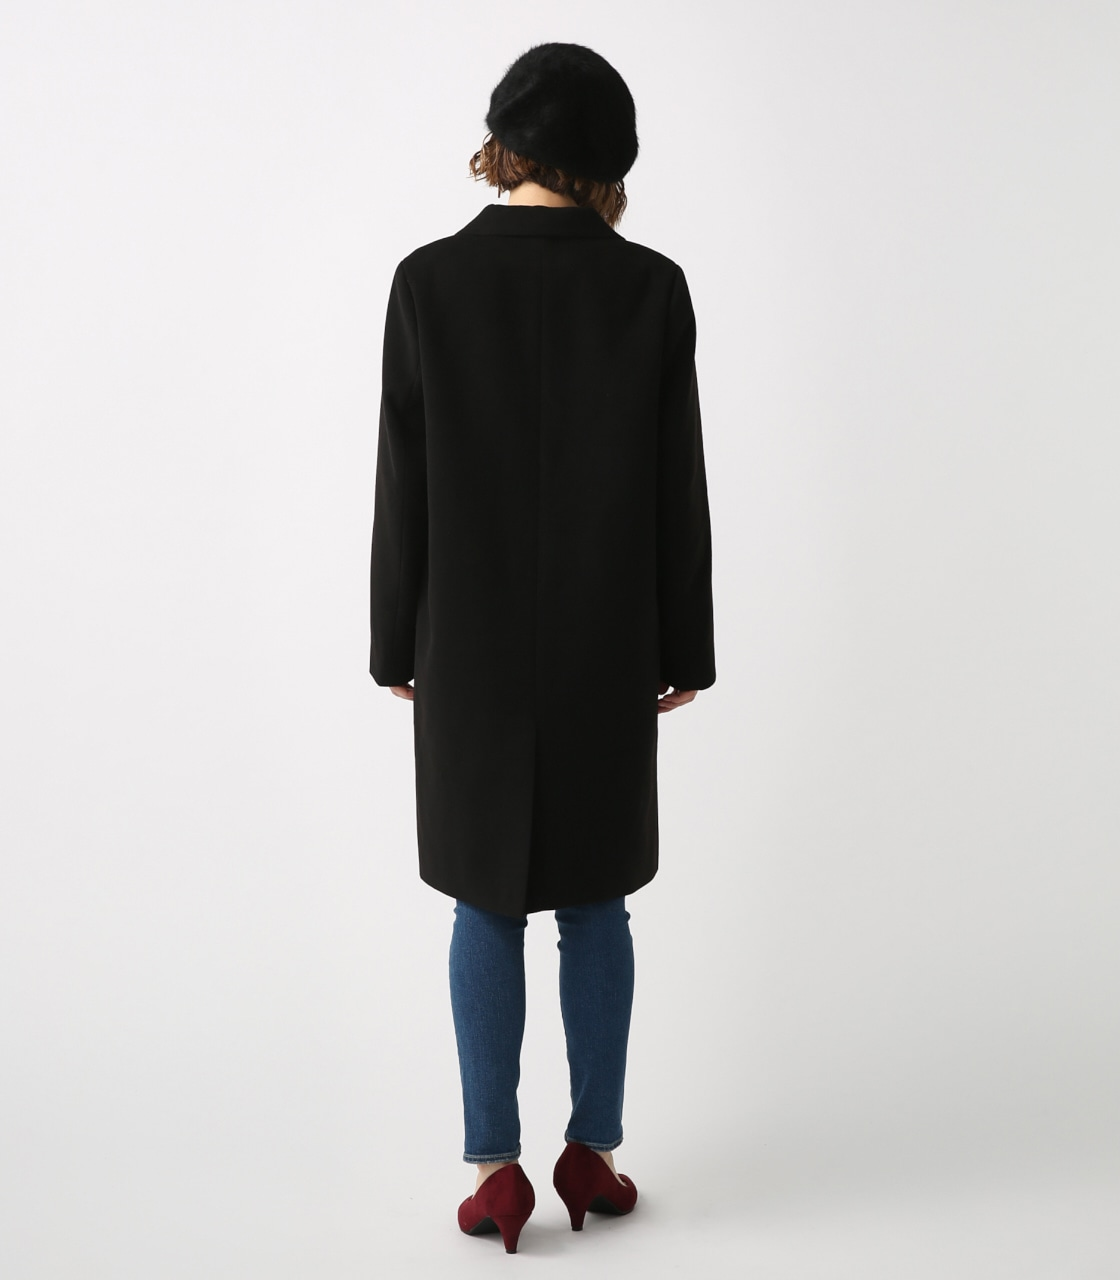 【AZUL BY MOUSSY】スタンダードチェスターコート 詳細画像 BLK 7